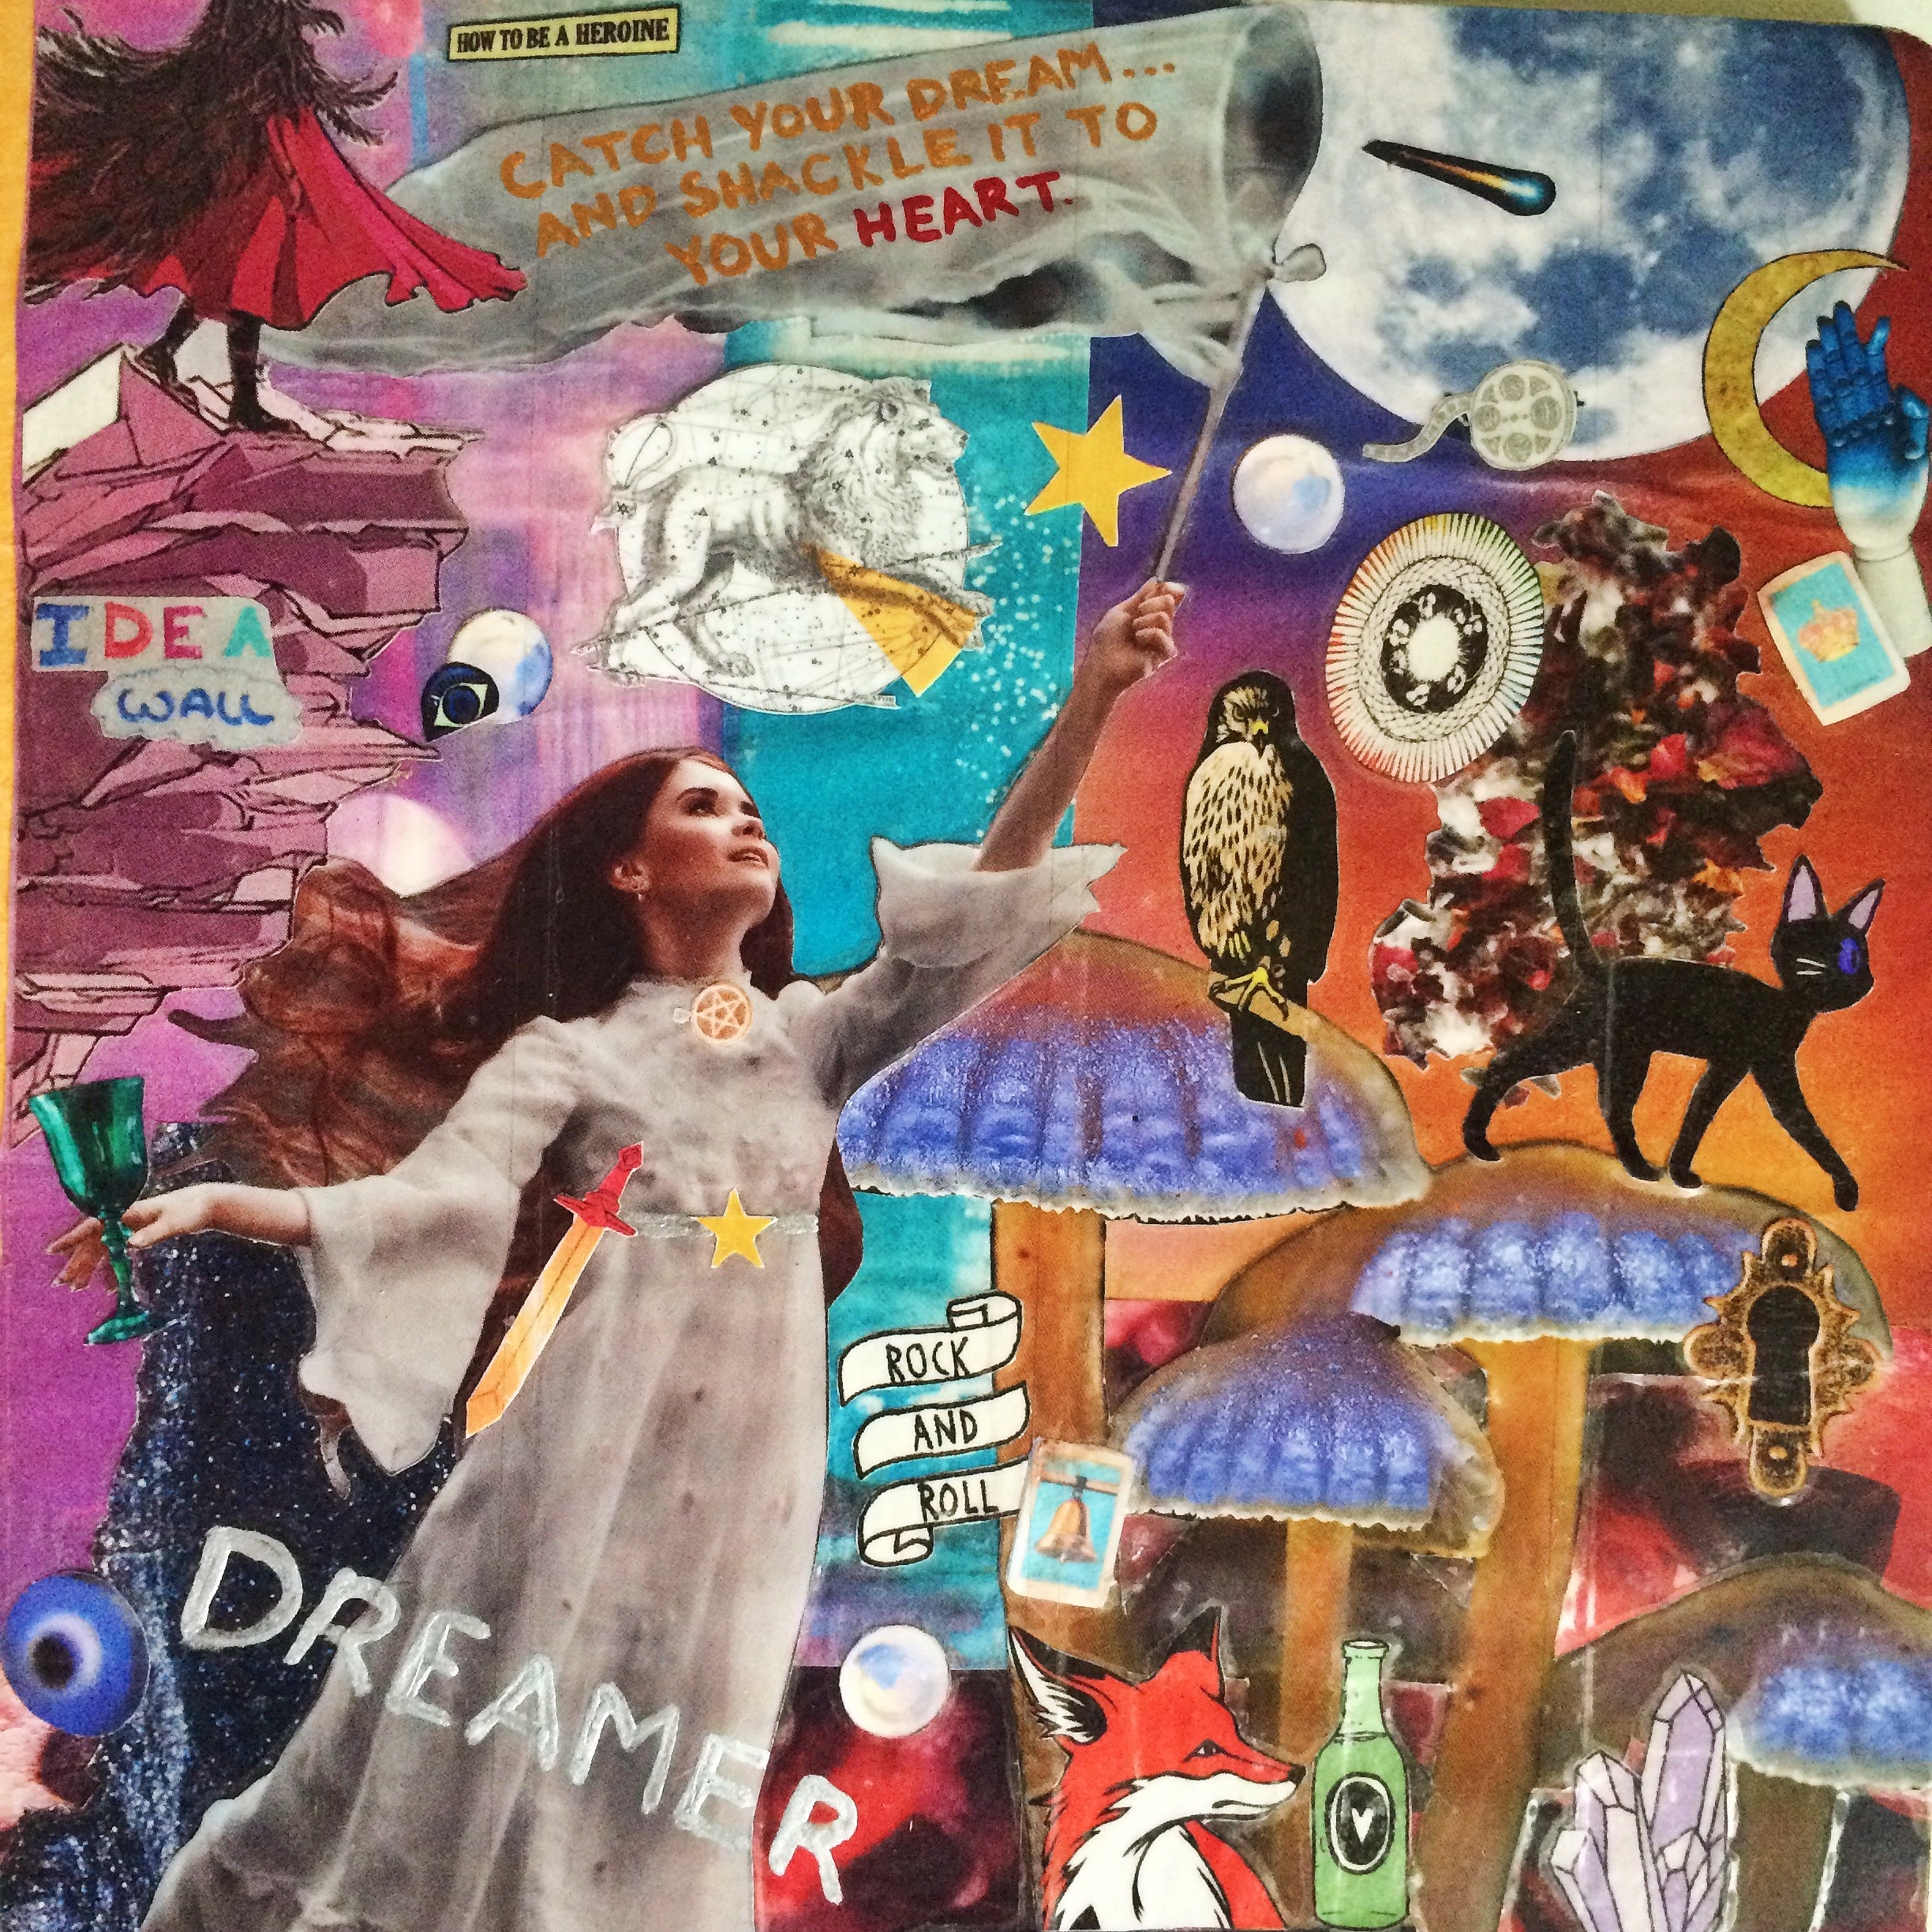 As evidenced by the cover of my most recent journal, dreaming big is rather an important theme in my life. Collage by me.